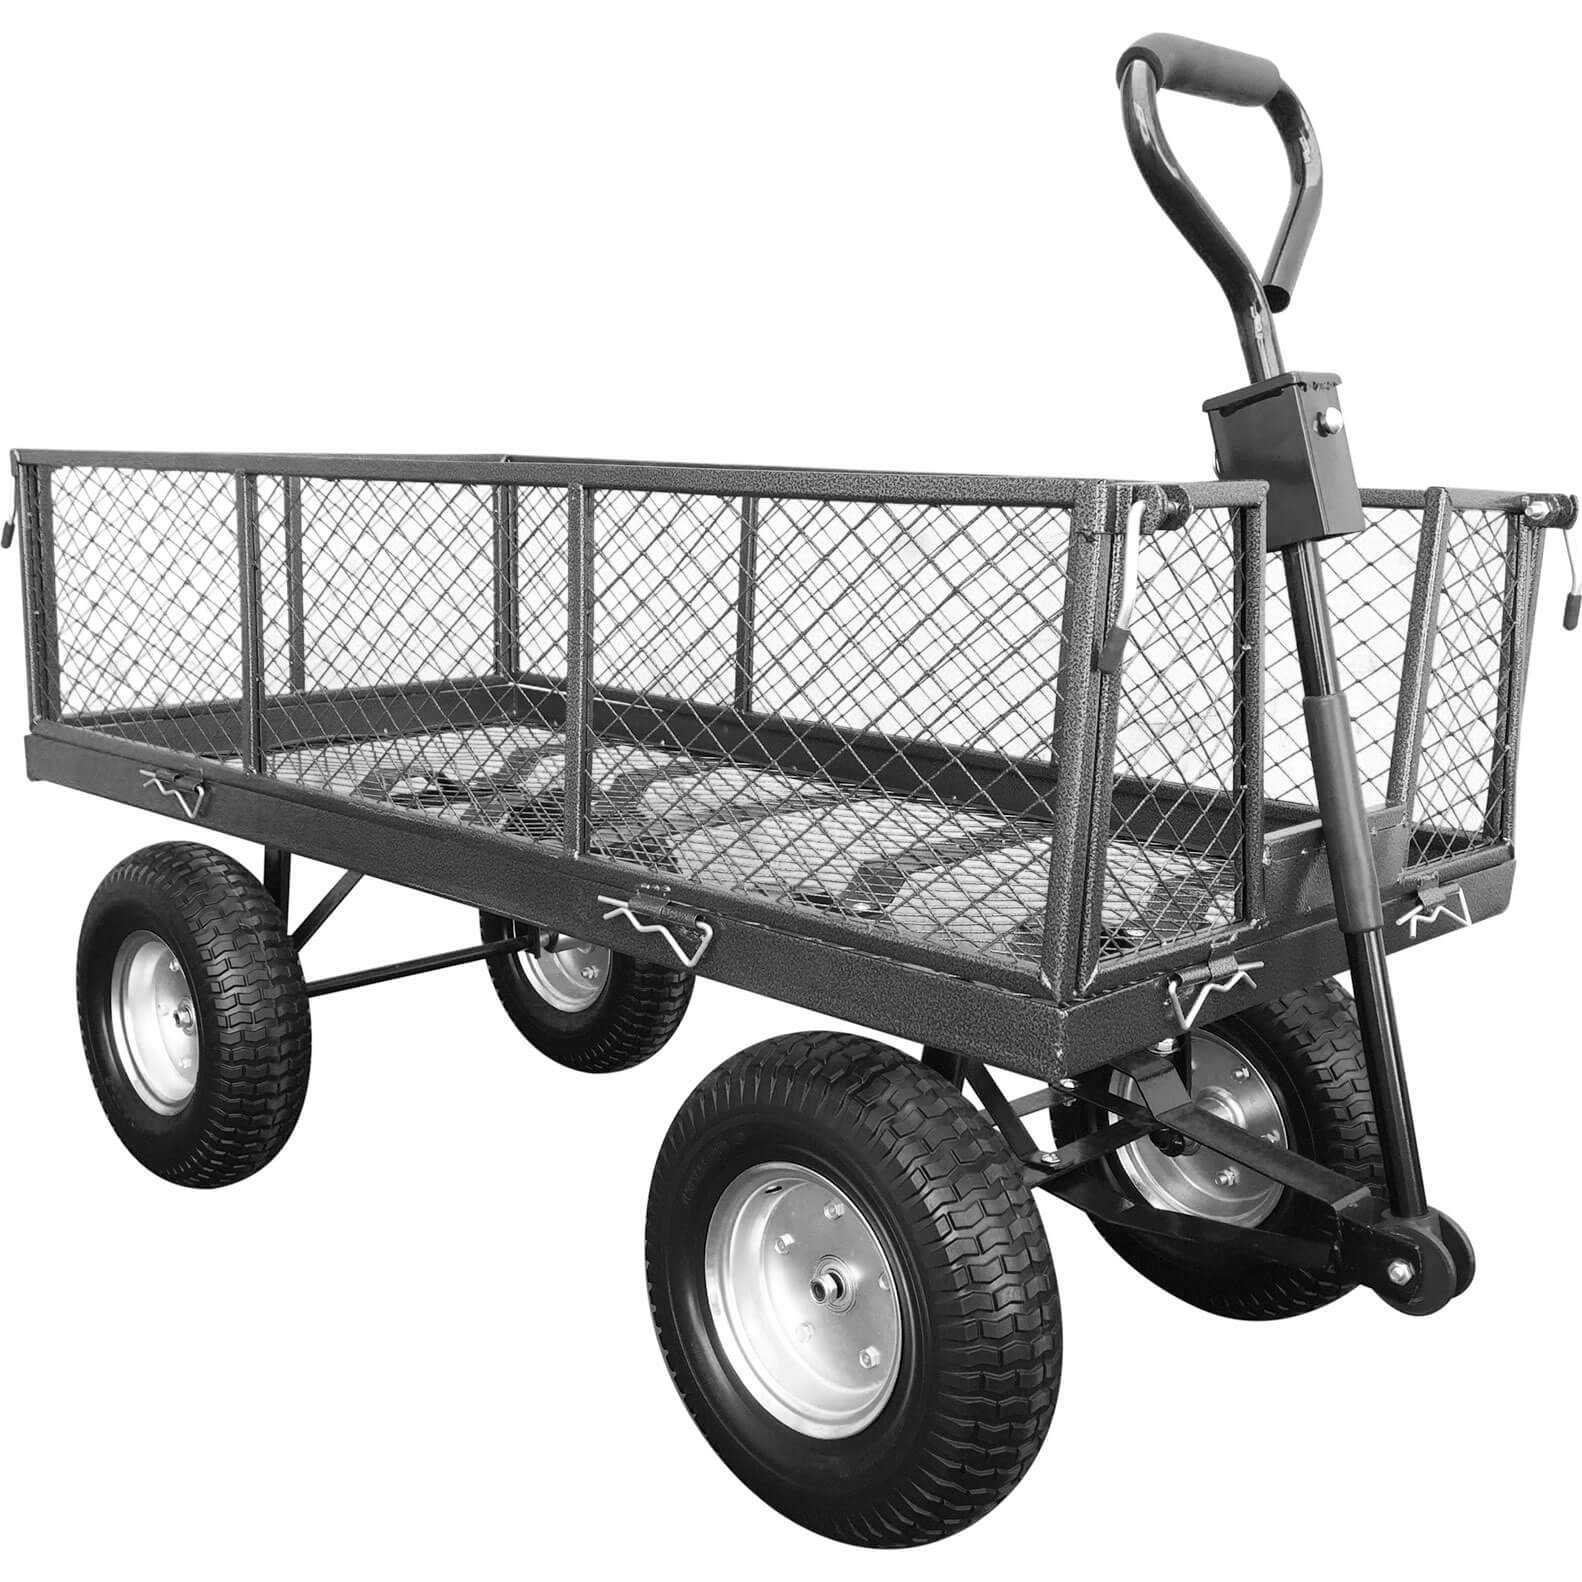 Image of Handy THLGT Large Steel Garden Trolley with Punctureless Wheels 350kg